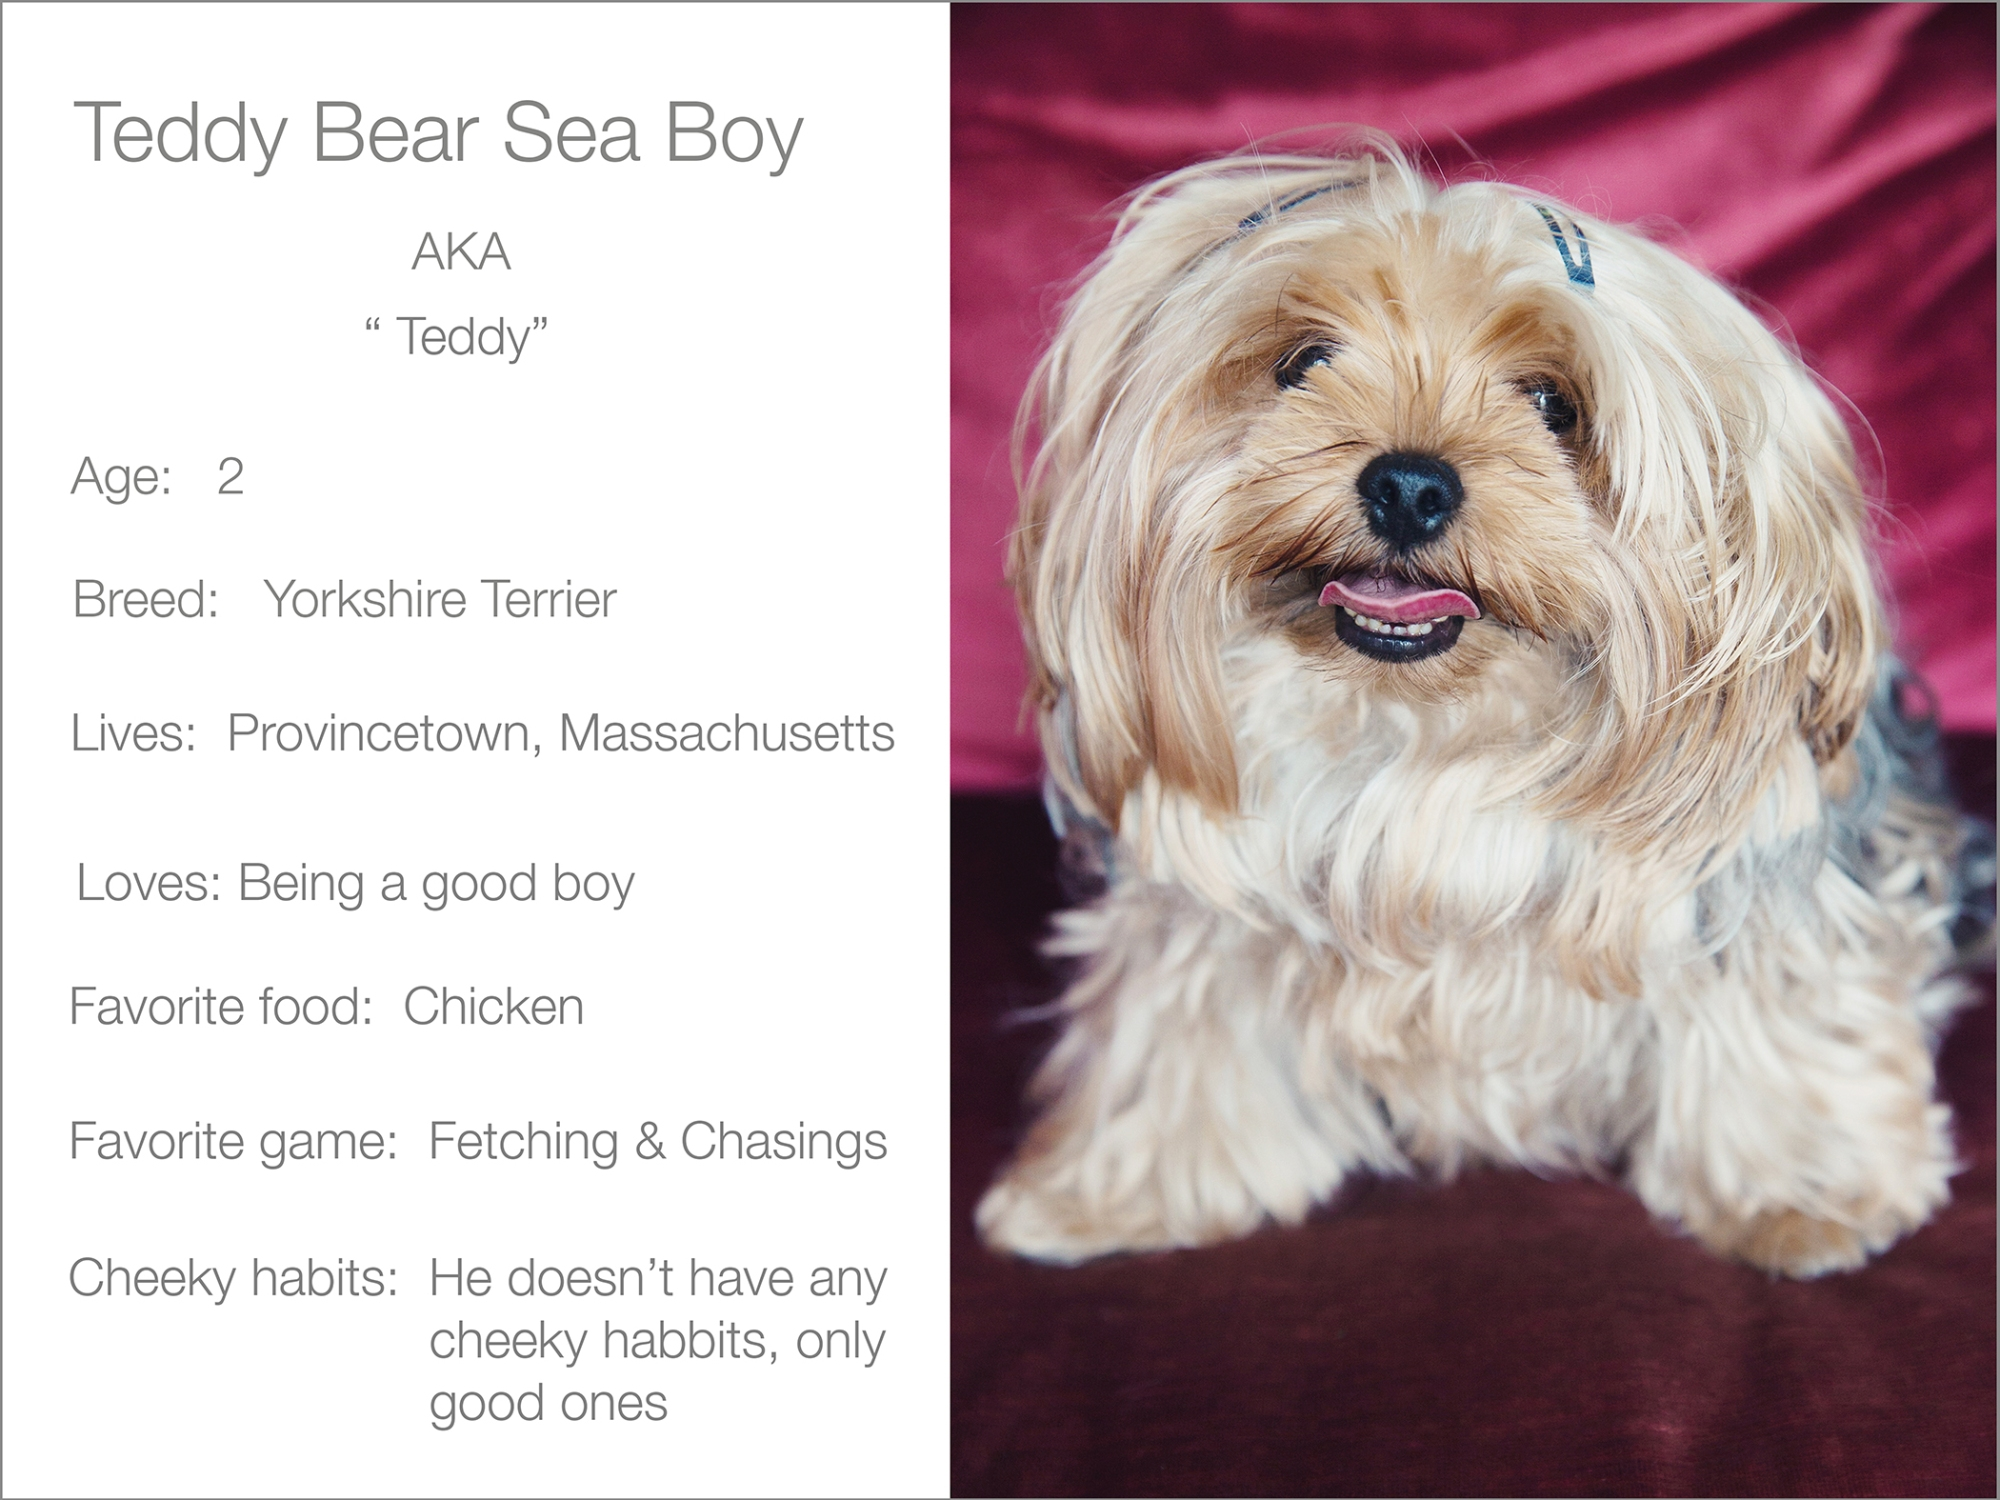 Teddy Bear profile dogs_and_the_city kristie_lee_photographer Charlie.jpg